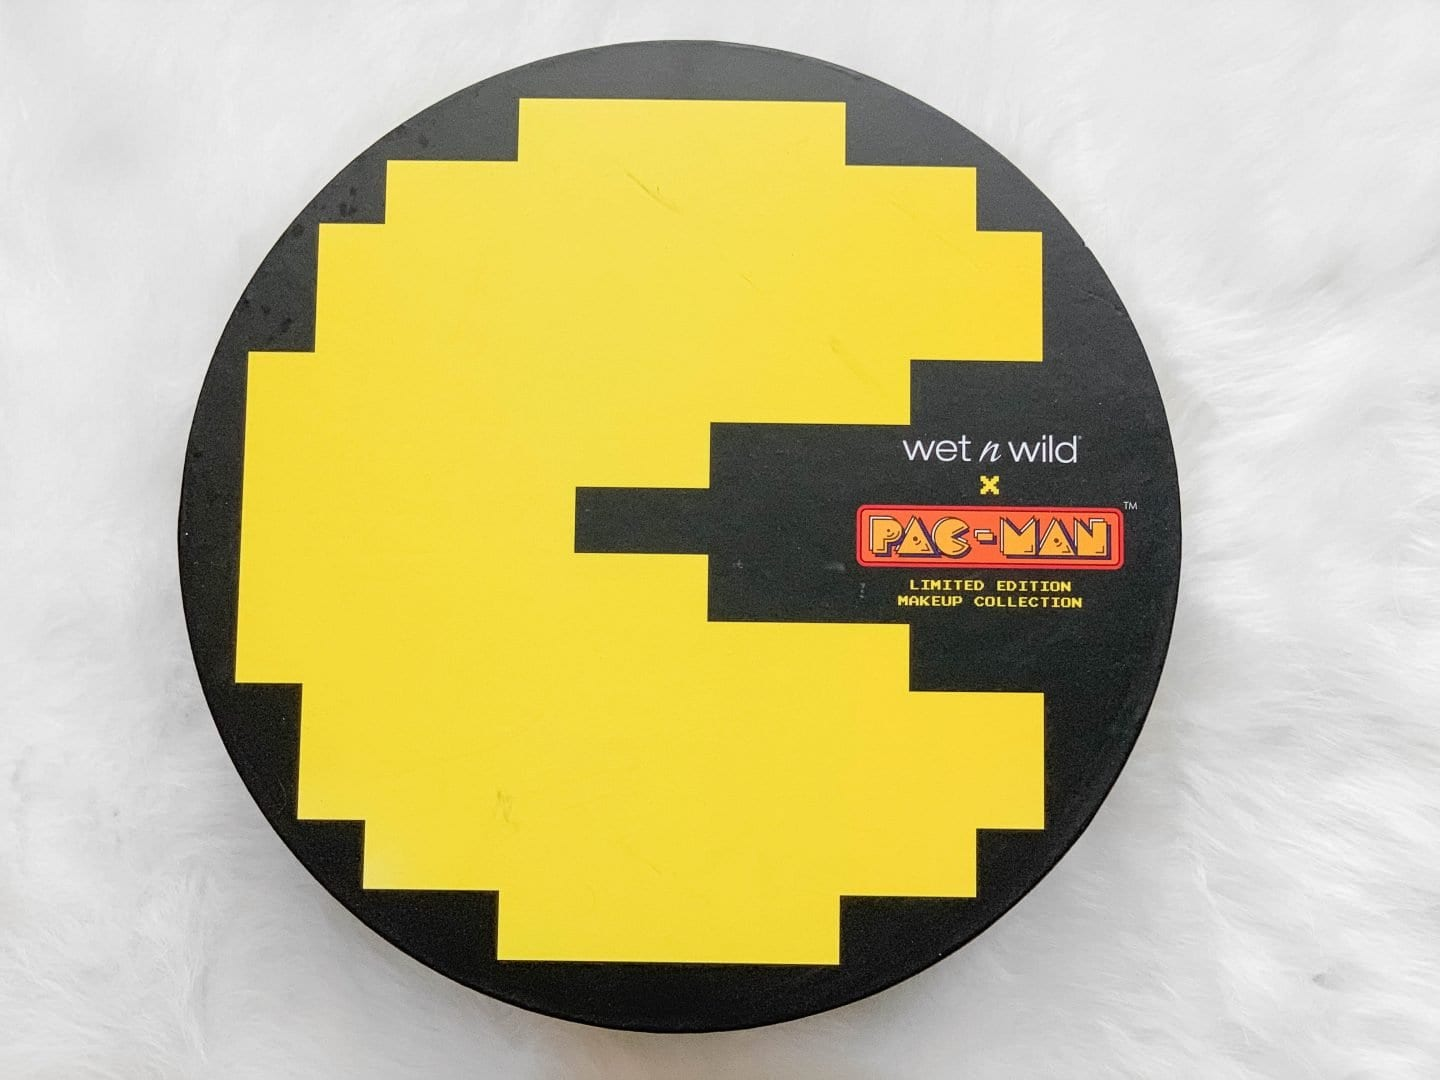 Wet n Wild PAC-MAN Collection Review